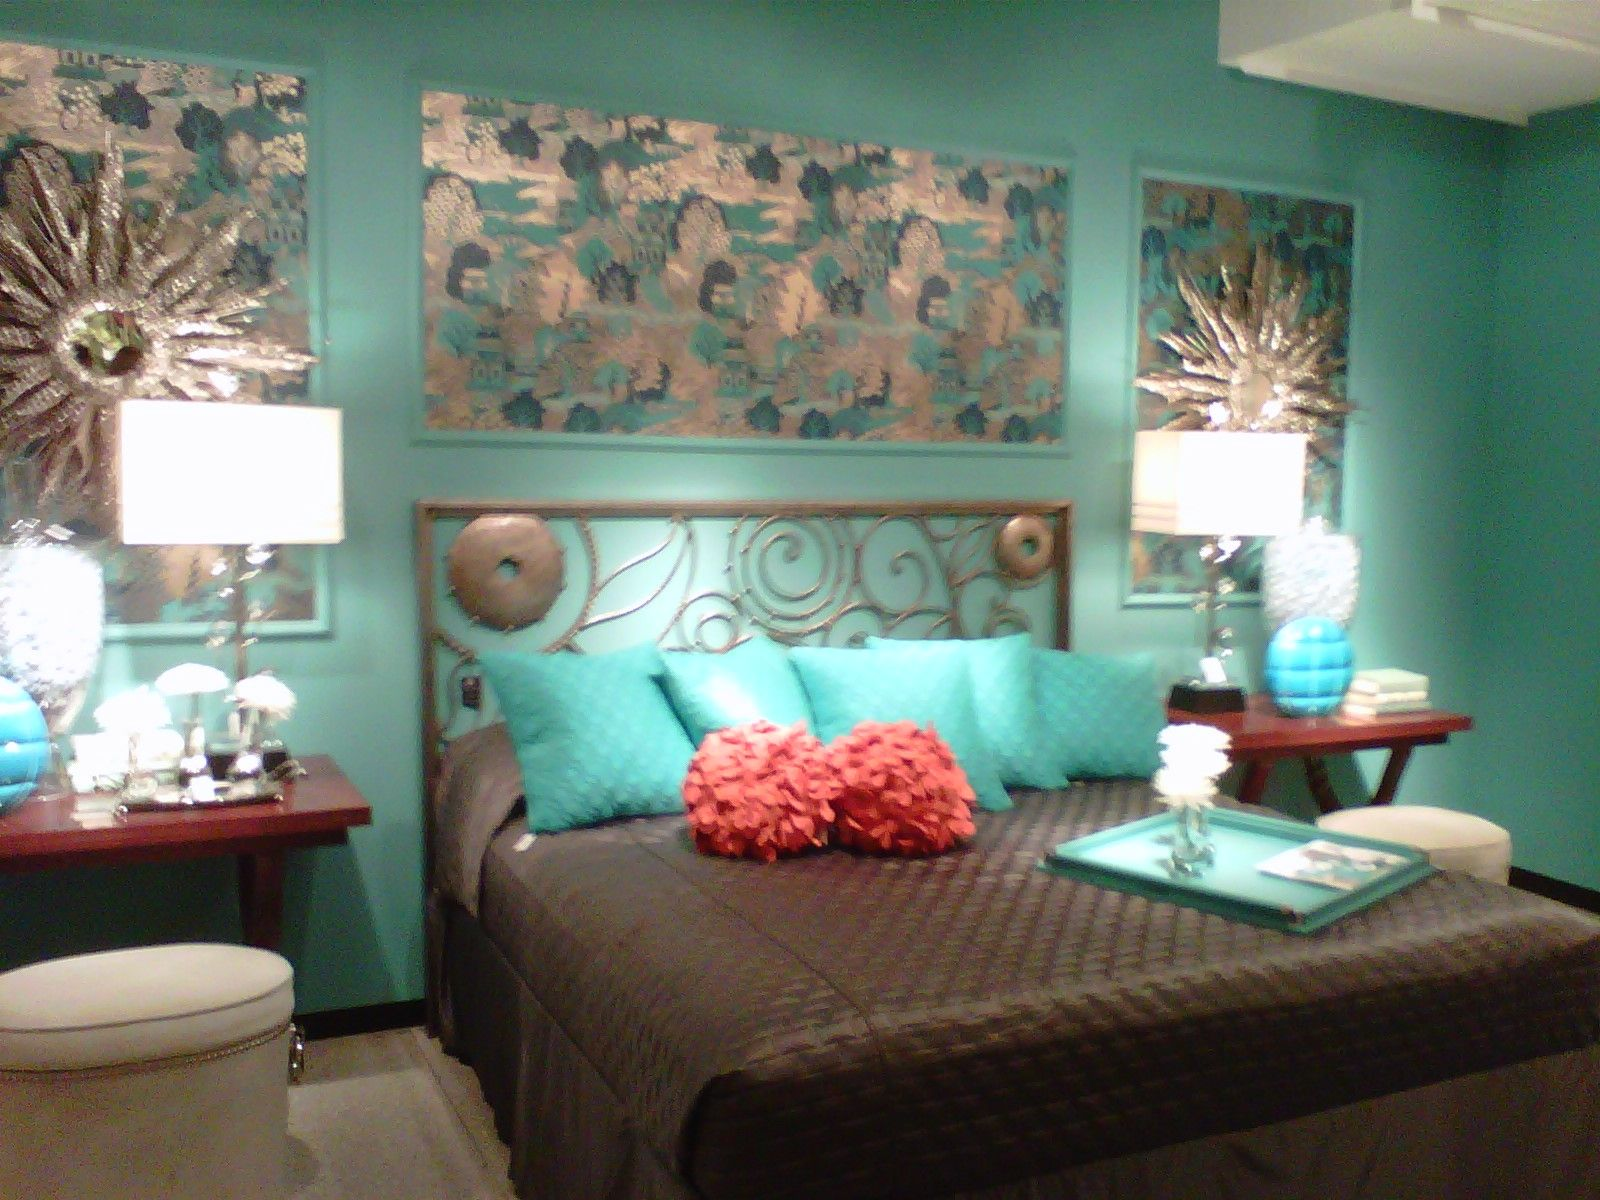 Turquoise Room Decorations Turquoise Room Decorating Awesome Turquoise Room Decorations Read It For More Images Schlafzimmer Ideen Bettwäsche Türkis Und Schlafzimmer Design